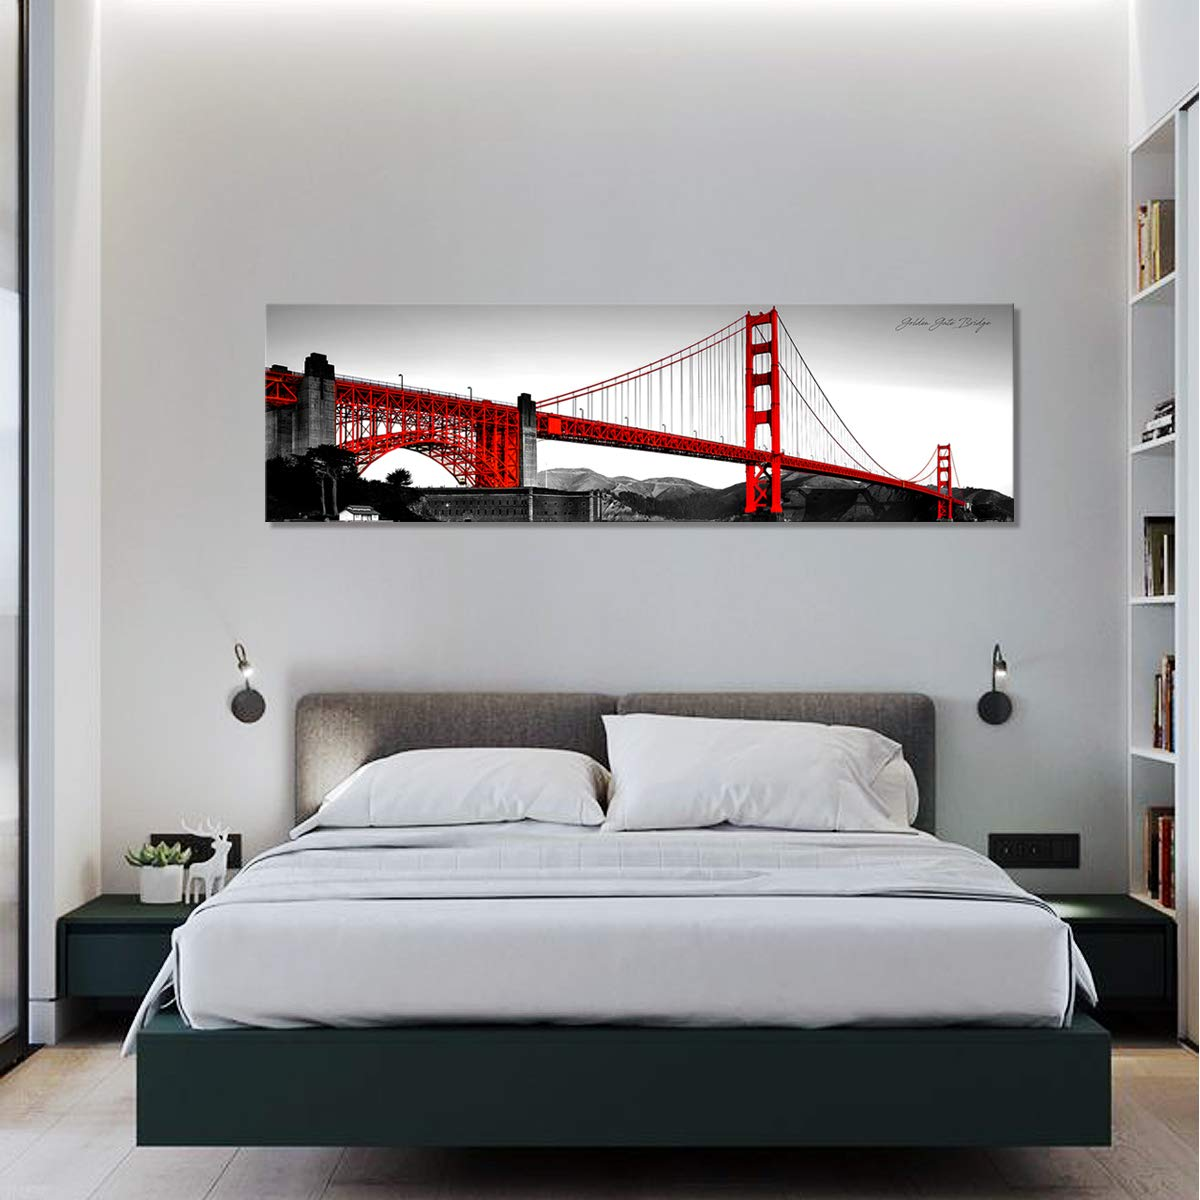 Wall Decor Sunfrower Golden Gate Bridge Poster Painting Wall Art Bedroom Decor B W Red Canvas Prints San Francisco City Skyline Building Poster Landscape Photo Picture Modern Artwork 12 X 36 Inch No